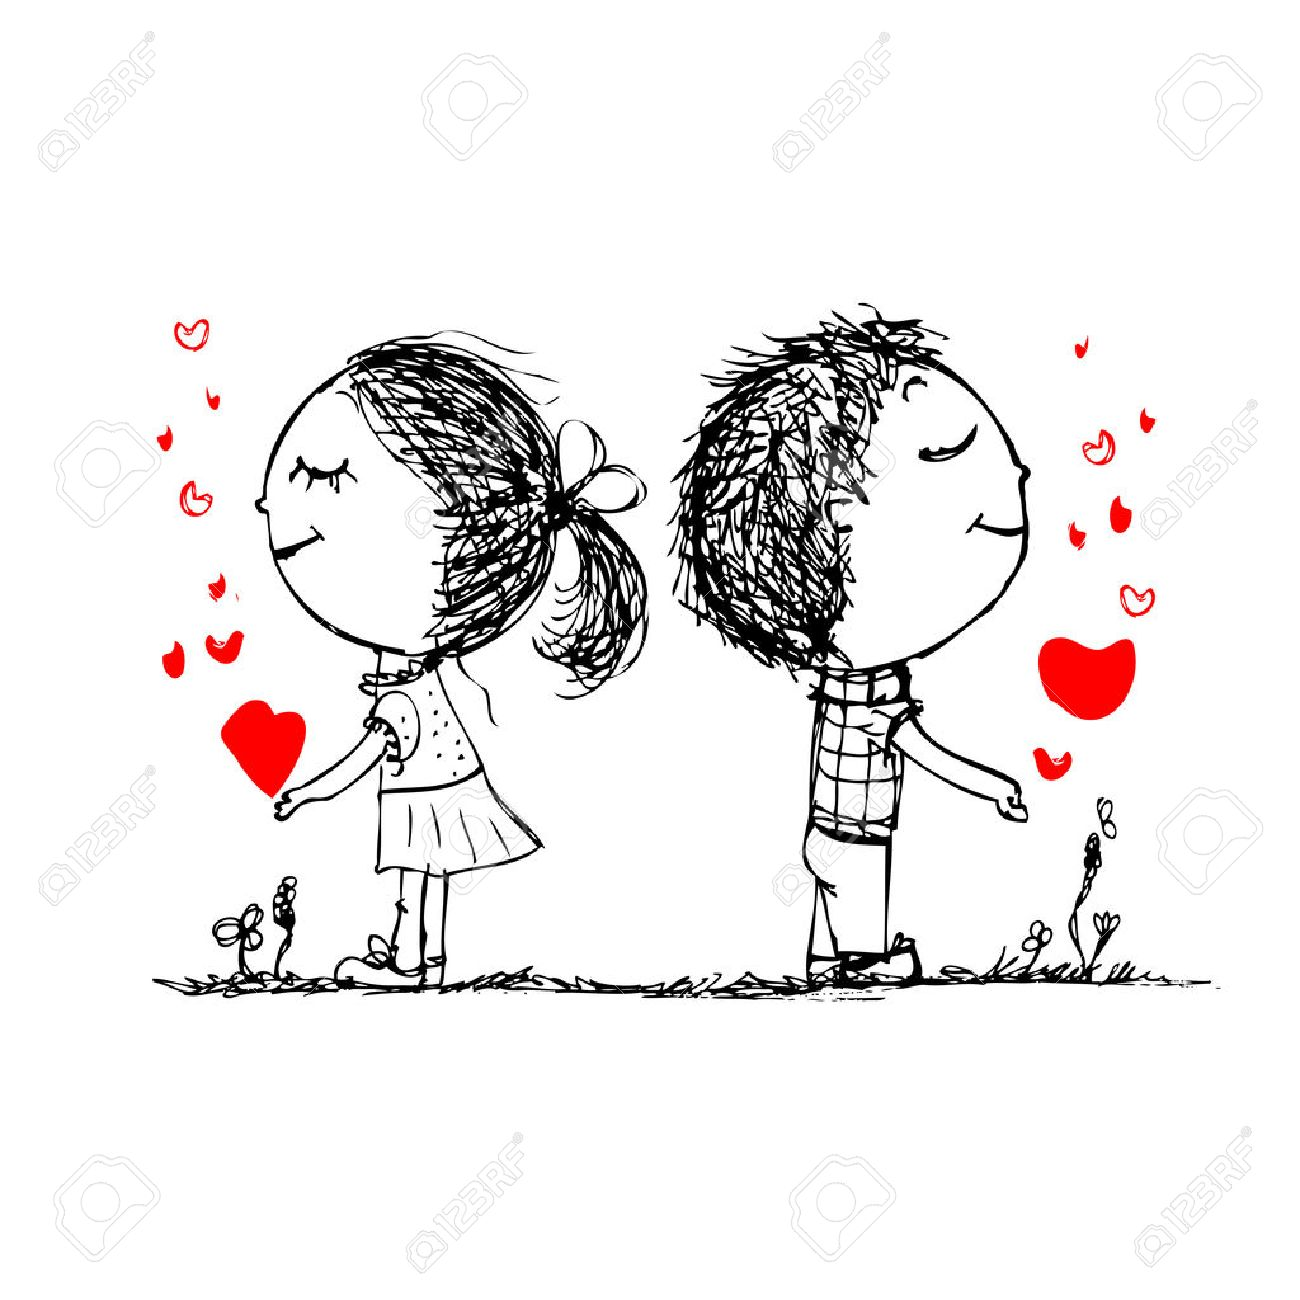 Couple in love together, valentine sketch for your design Stock Vector - 27321759